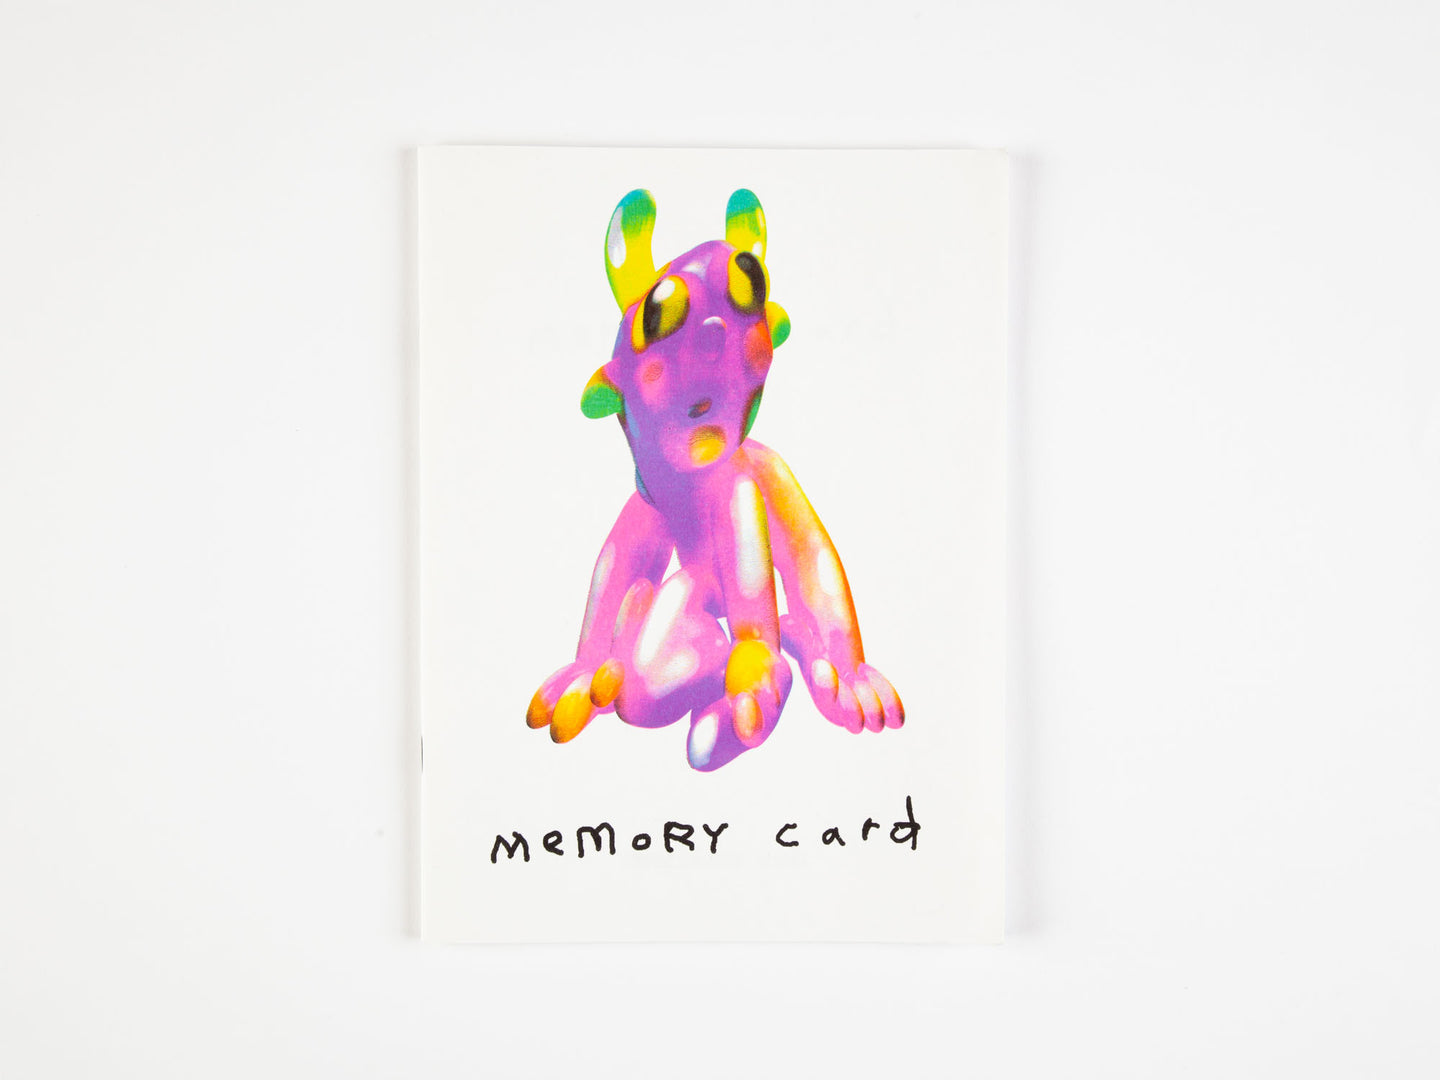 Memory Card by Sam Bailey